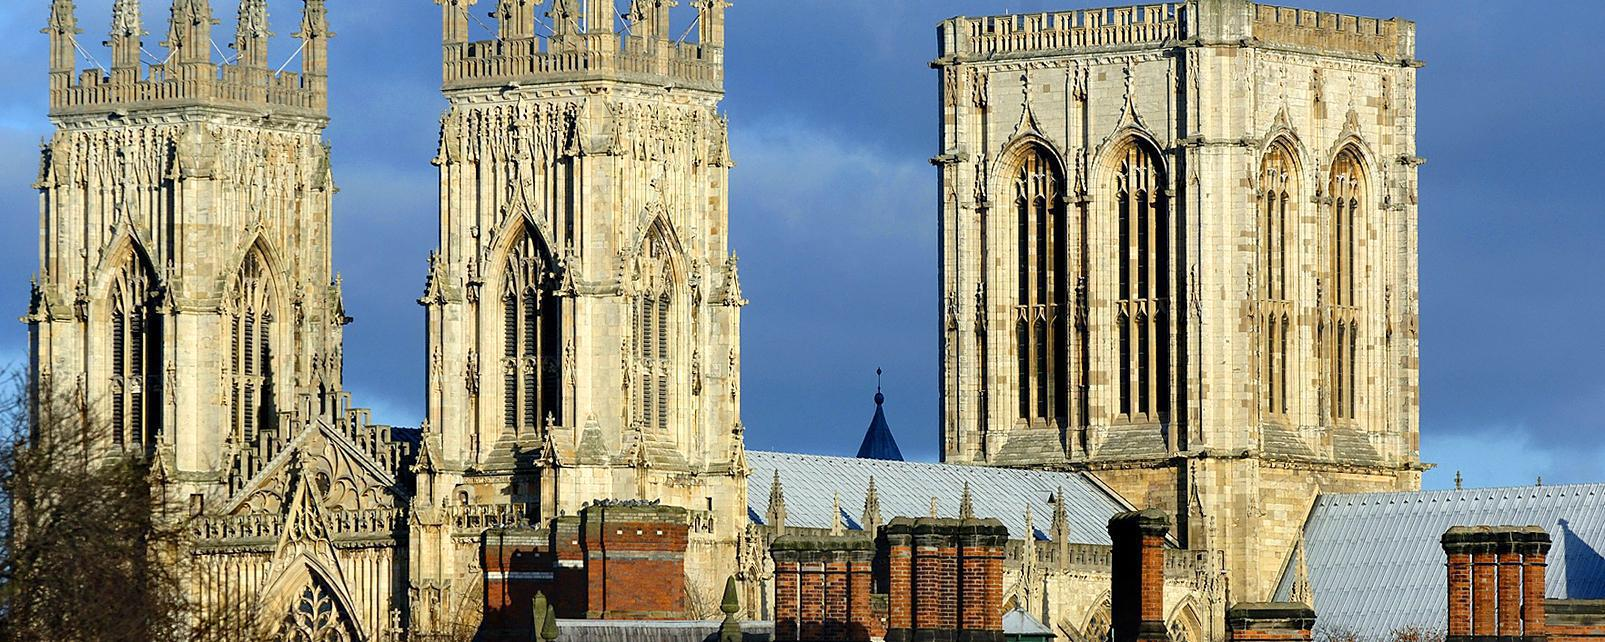 York United Kingdom  city photos : Weather forecast York, United Kingdom Best time to go Easyvoyage